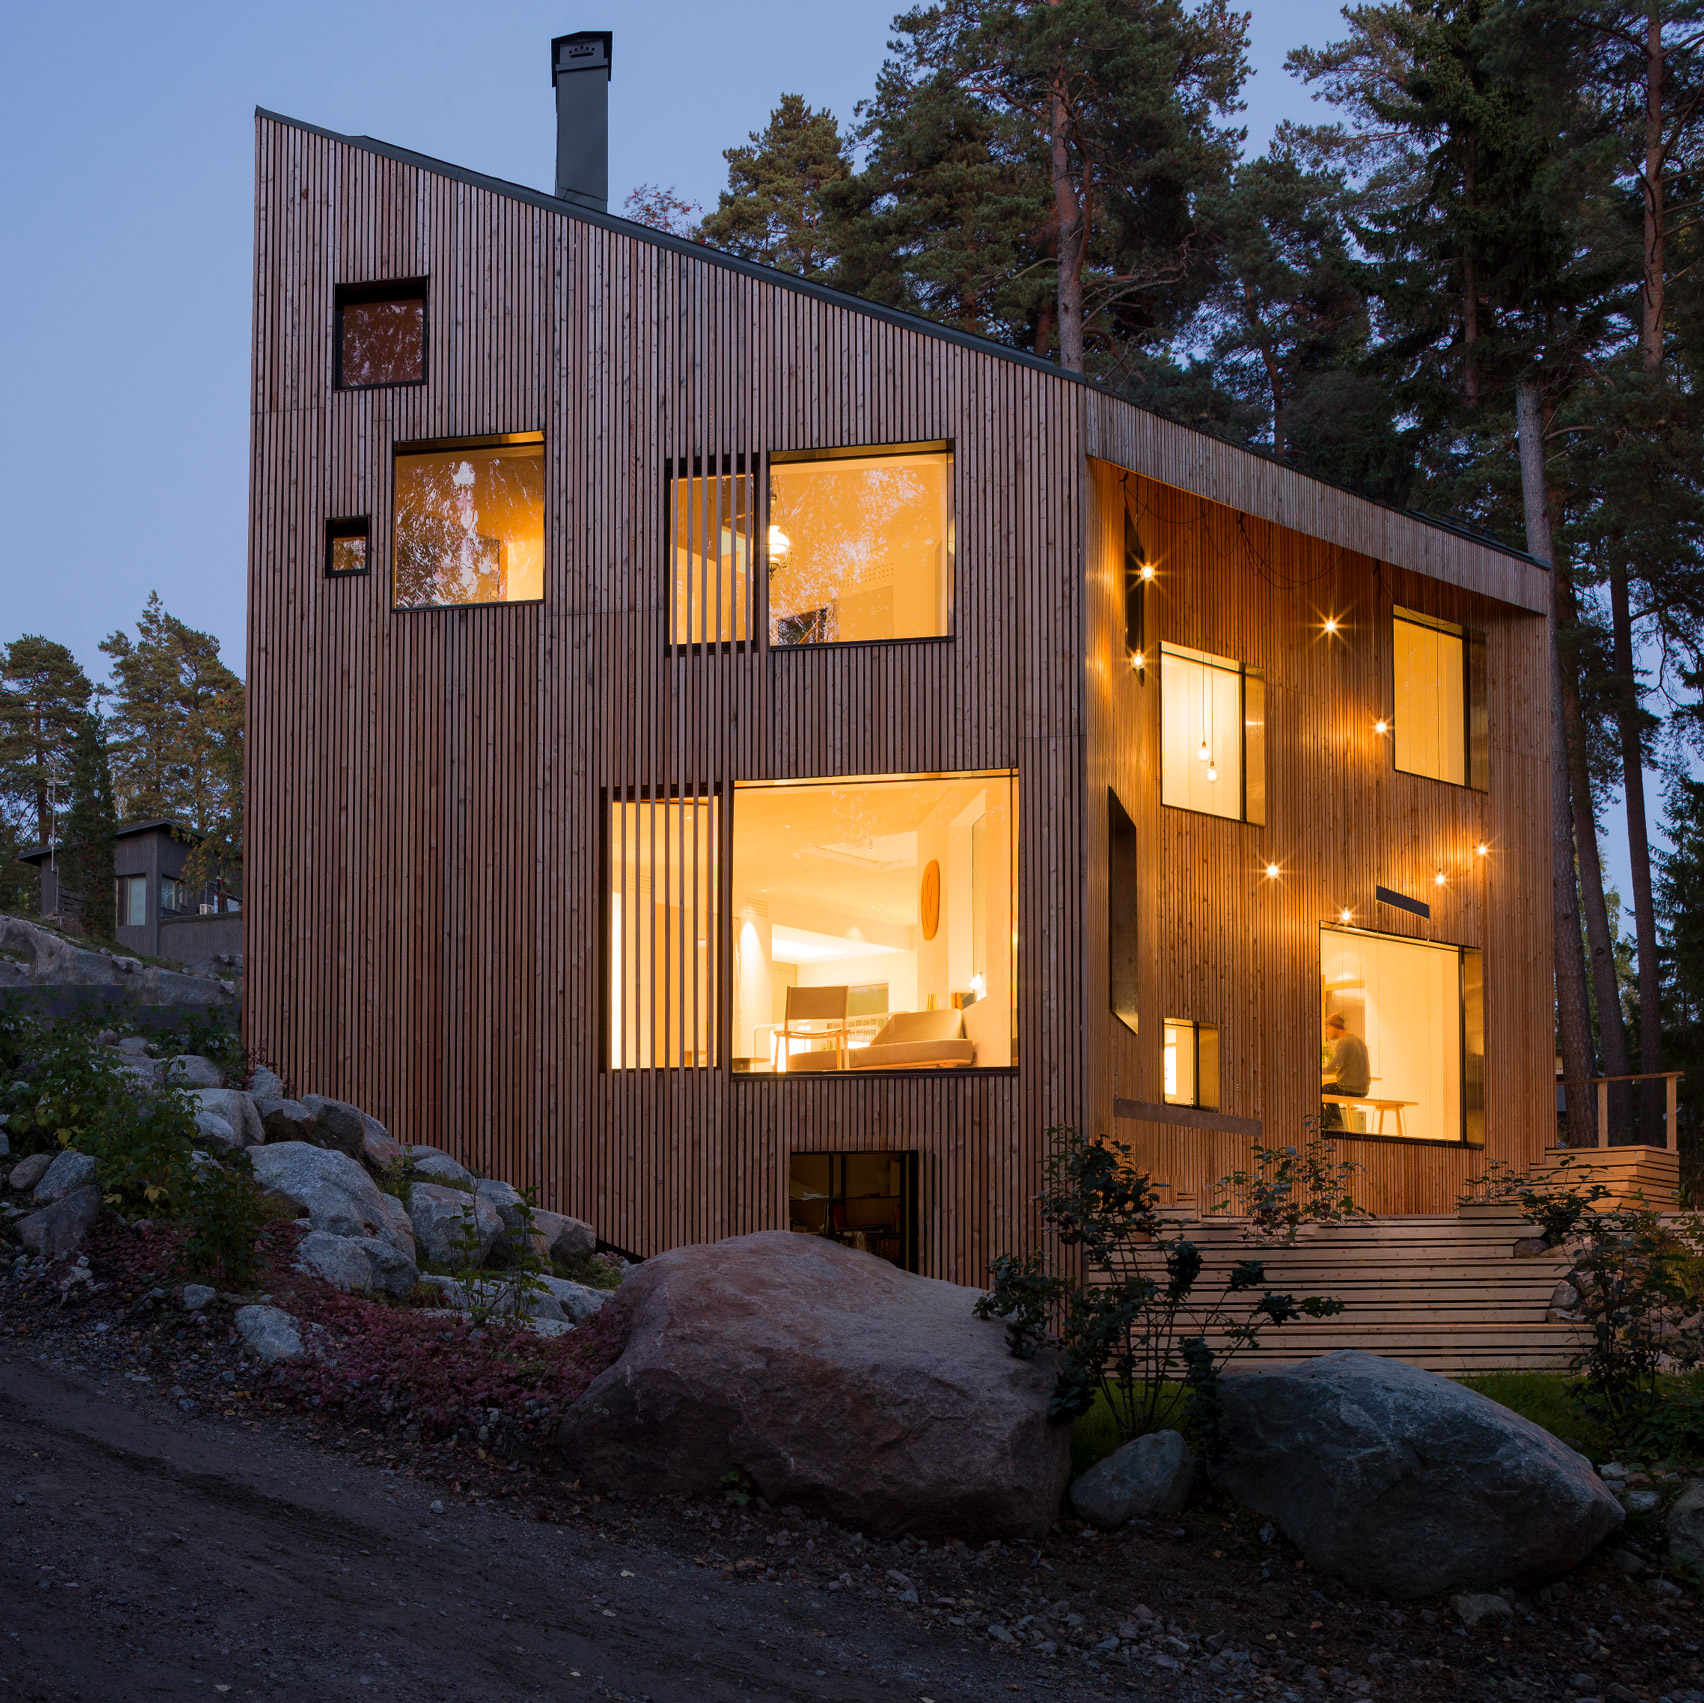 House design and architecture in Finland | Dezeen on amazing country homes, amazing views of denver, amazing english homes, amazing prefab homes, amazing architectural structures, amazing interior homes, amazing mexico homes, amazing contemporary homes, amazing underwater homes, amazing black and white, amazing beauty, amazing unusual homes, amazing animal homes, amazing home exteriors, classic glass homes, amazing illinois homes, amazing nursing homes, amazing hollywood homes, amazing art homes, amazing coastal homes,